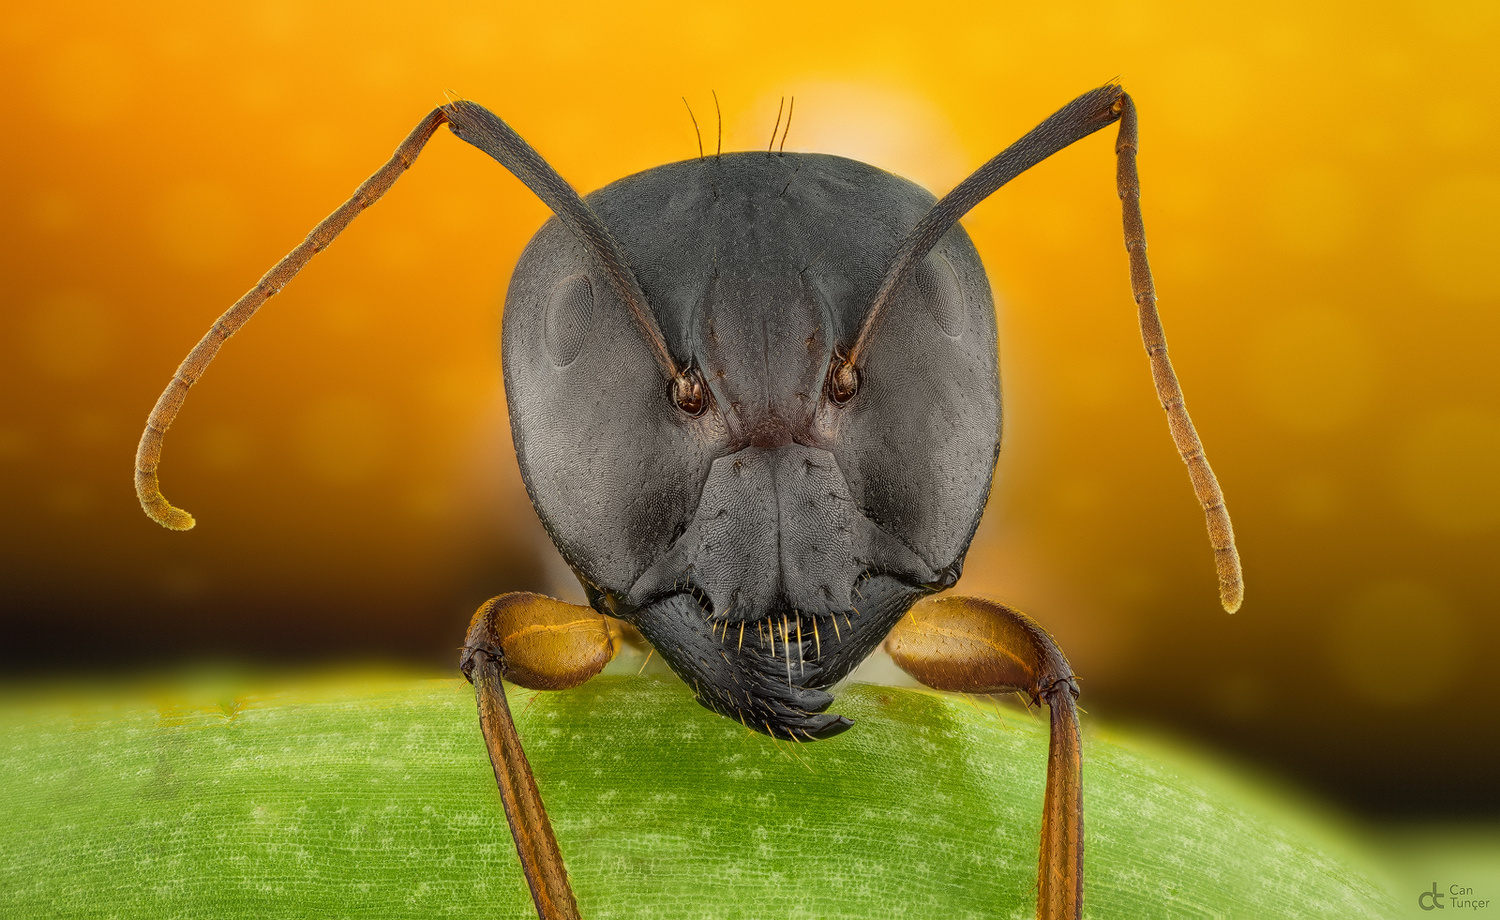 Ant Portrait by Can Tunçer